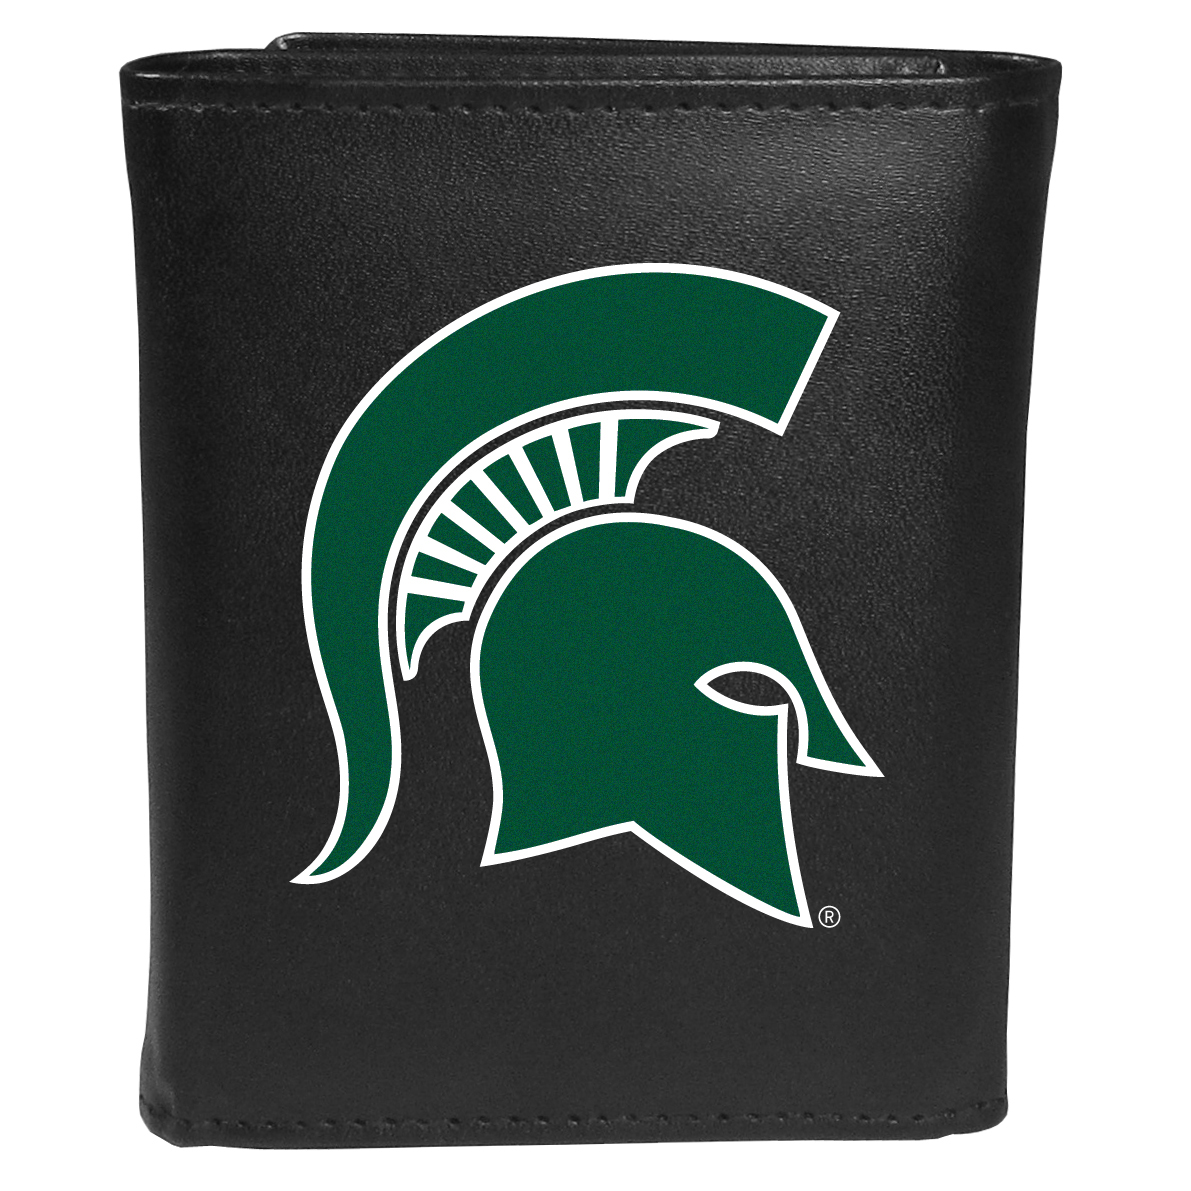 Michigan St. Spartans Tri-fold Wallet Large Logo - Sports fans do not have to sacrifice style with this classic tri-fold wallet that sports theMichigan St. Spartans?extra large logo. This men's fashion accessory has a leather grain look and expert craftmanship for a quality wallet at a great price. The wallet features inner credit card slots, windowed ID slot and a large billfold pocket. The front of the wallet features an extra large printed team logo.